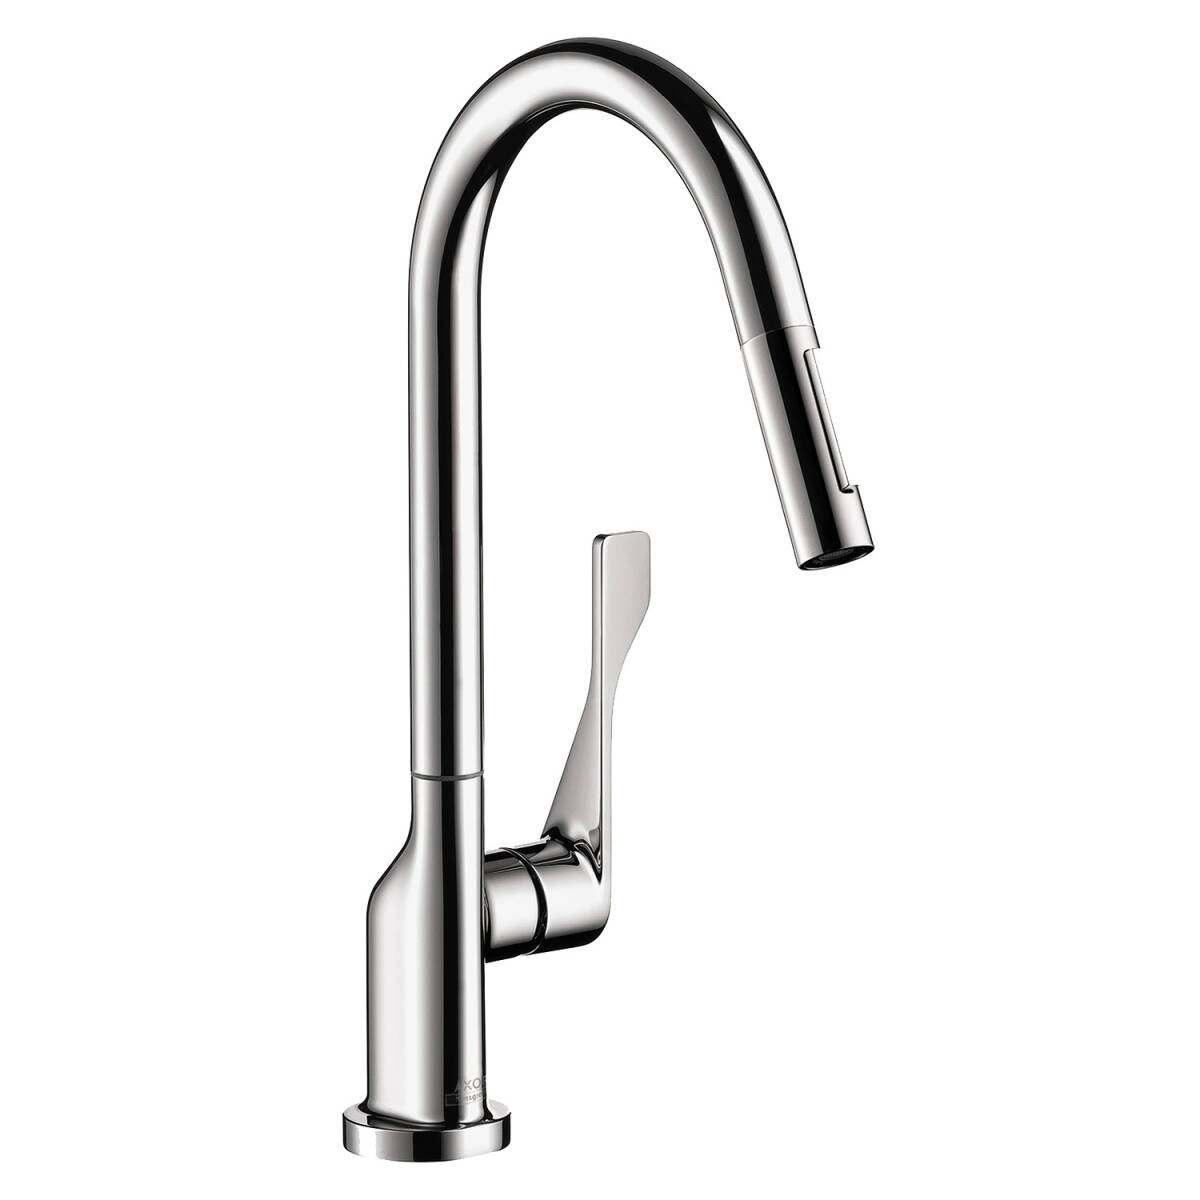 Axor Kitchen Faucets Axor Citterio Axor Citterio 2 Spray Higharc